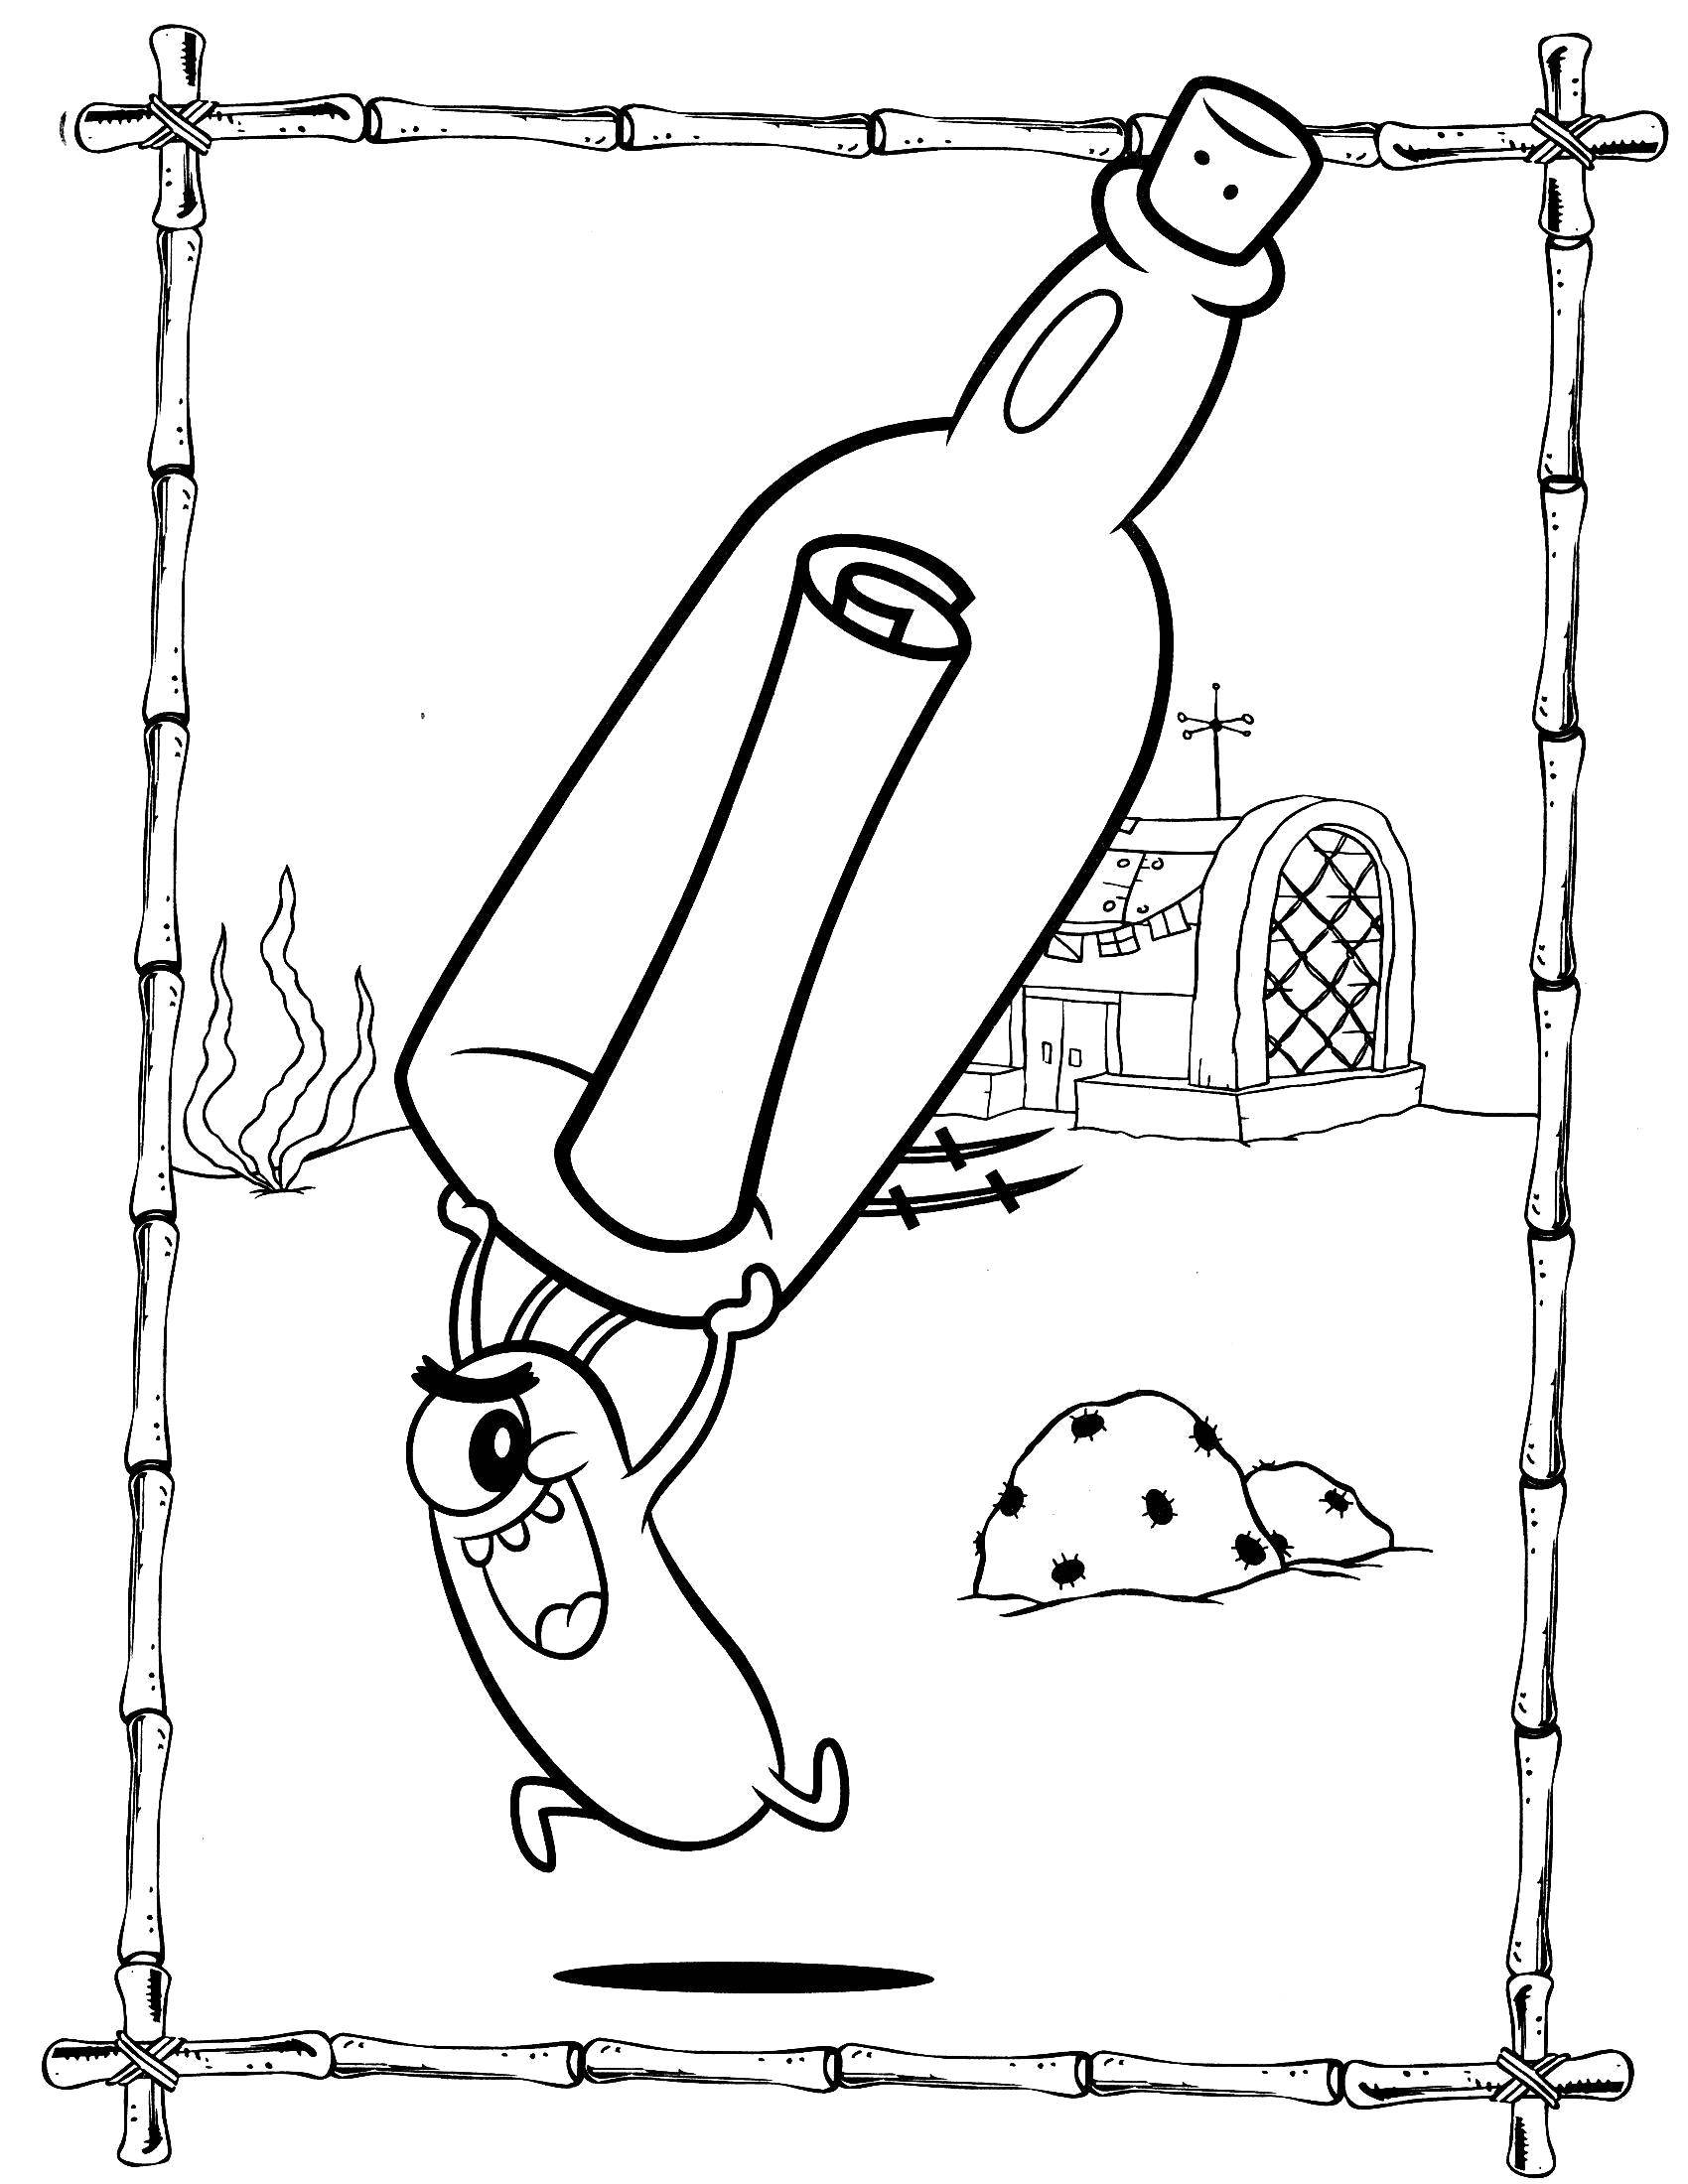 Online coloring pages Krabby Patty, Coloring Plankton ...